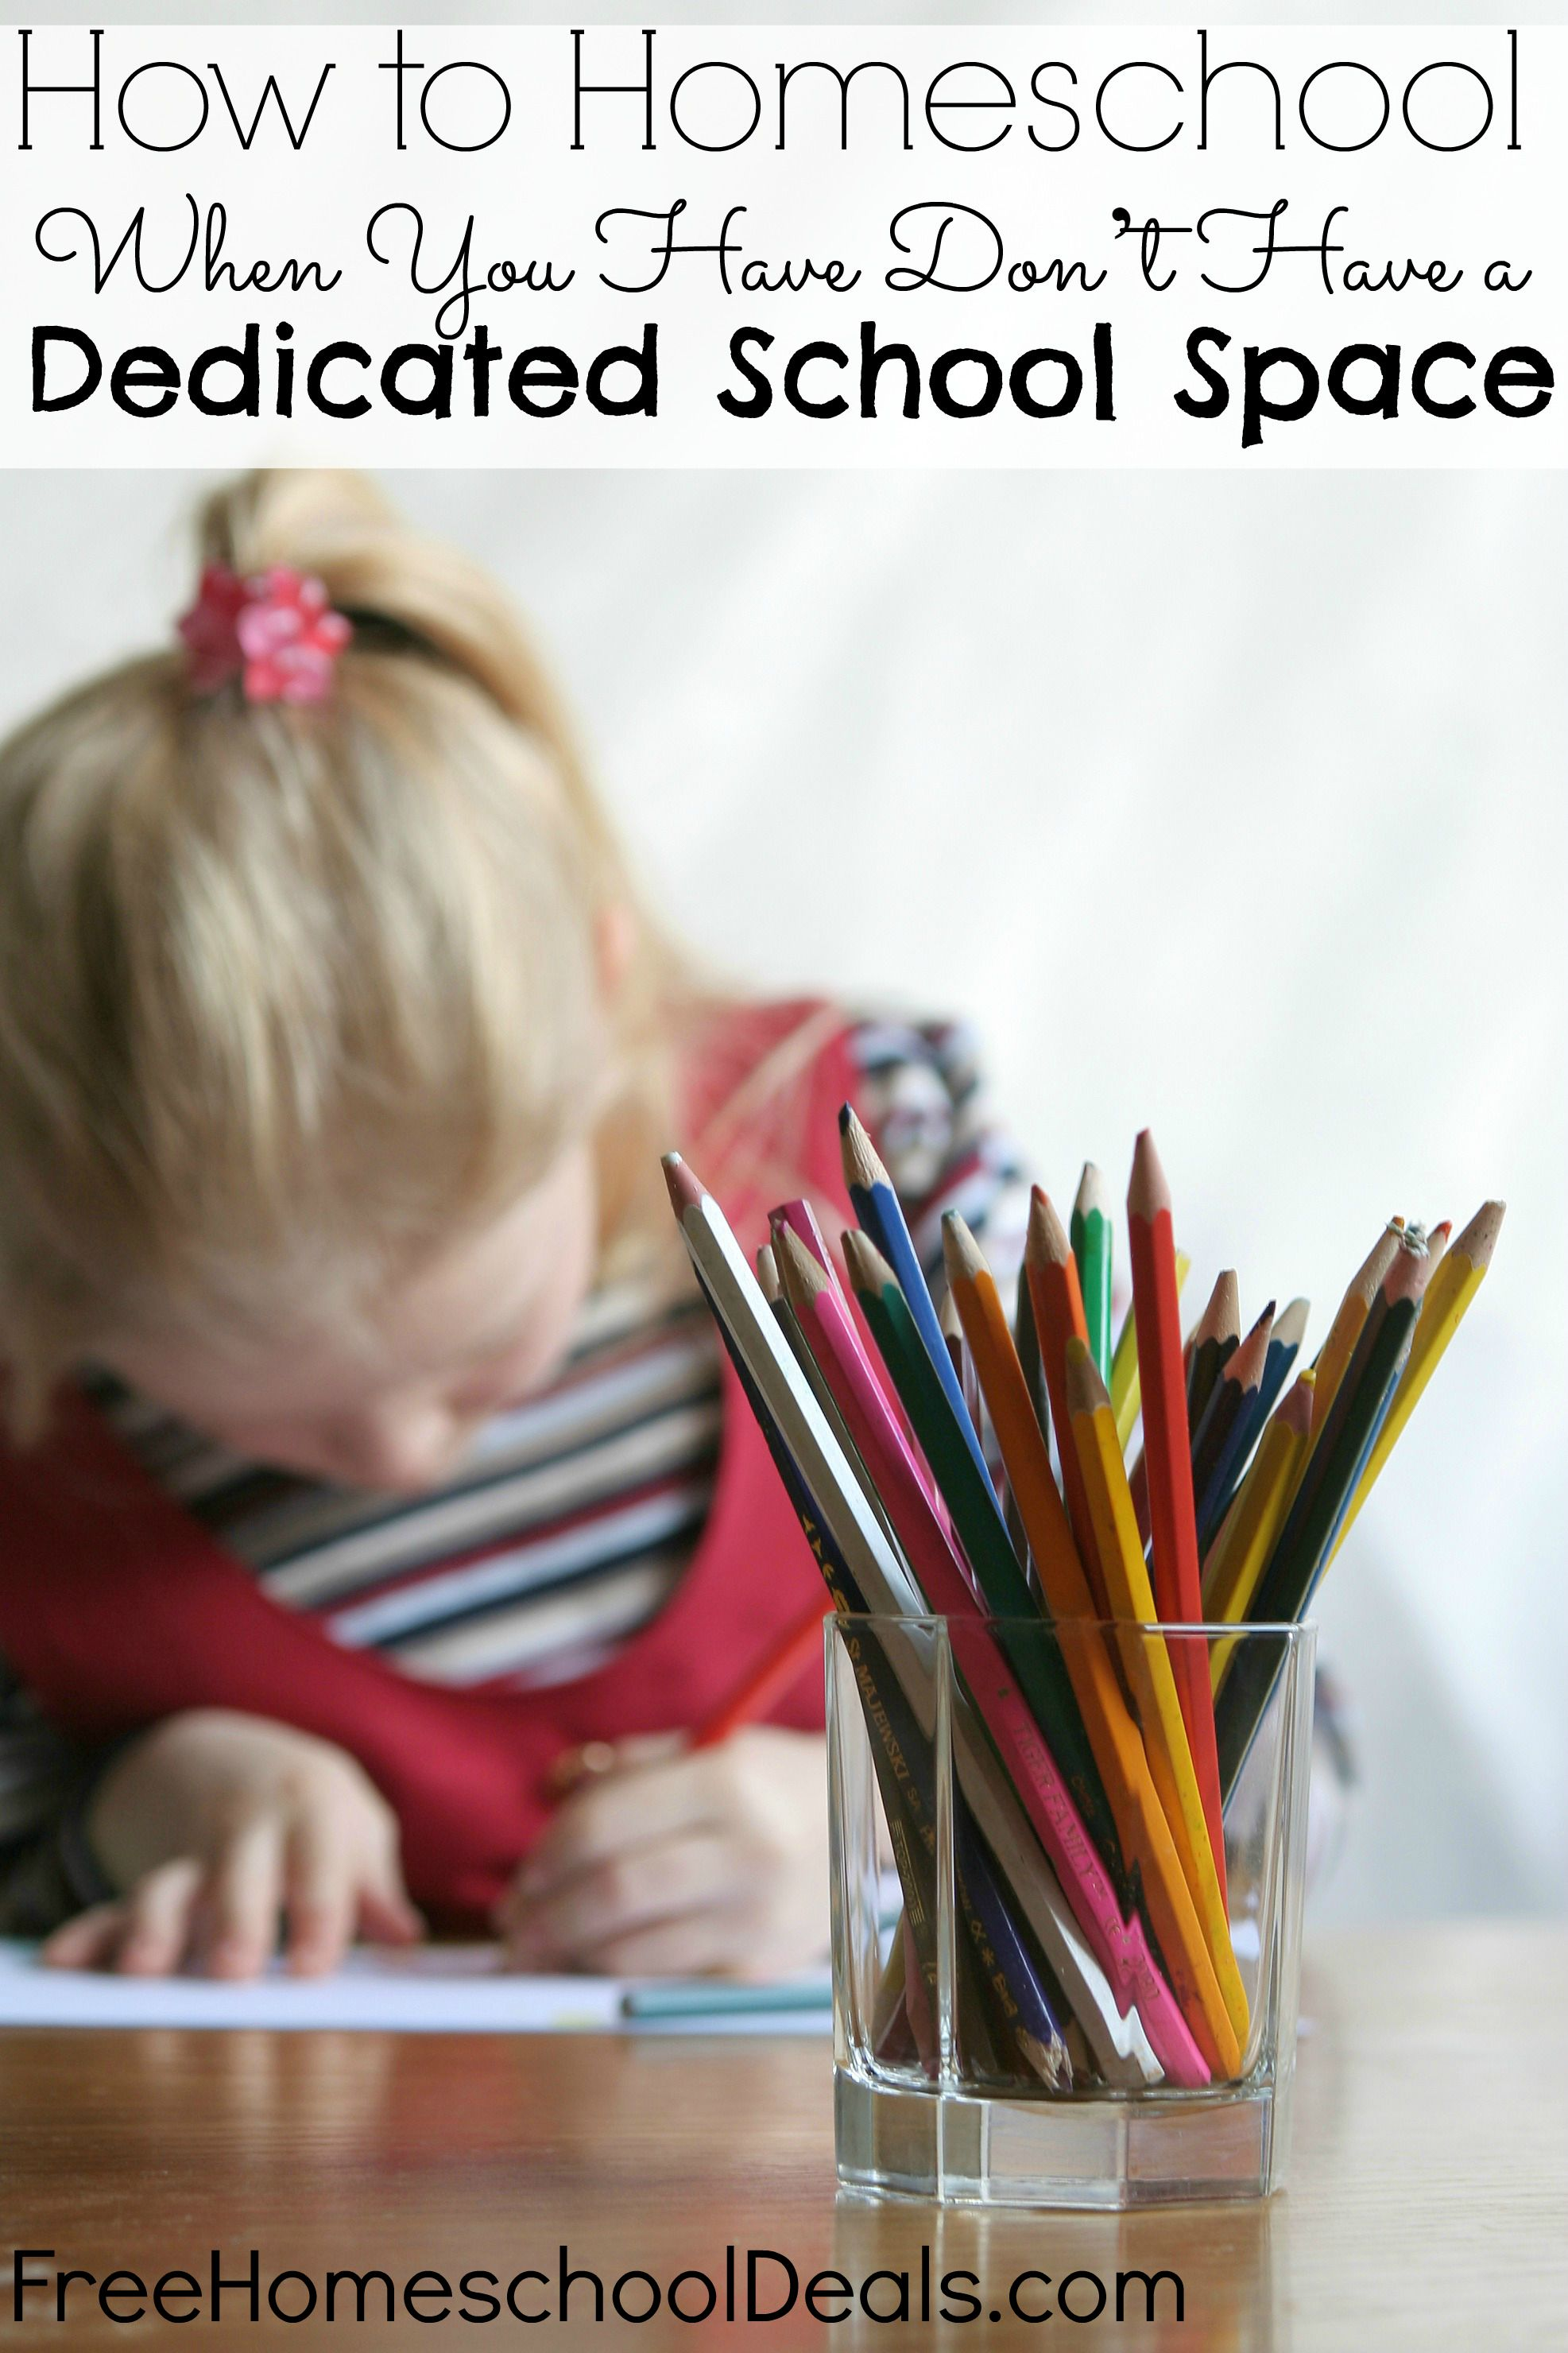 How to Homeschool When You Have Don't Have a Dedicated School Space Picture